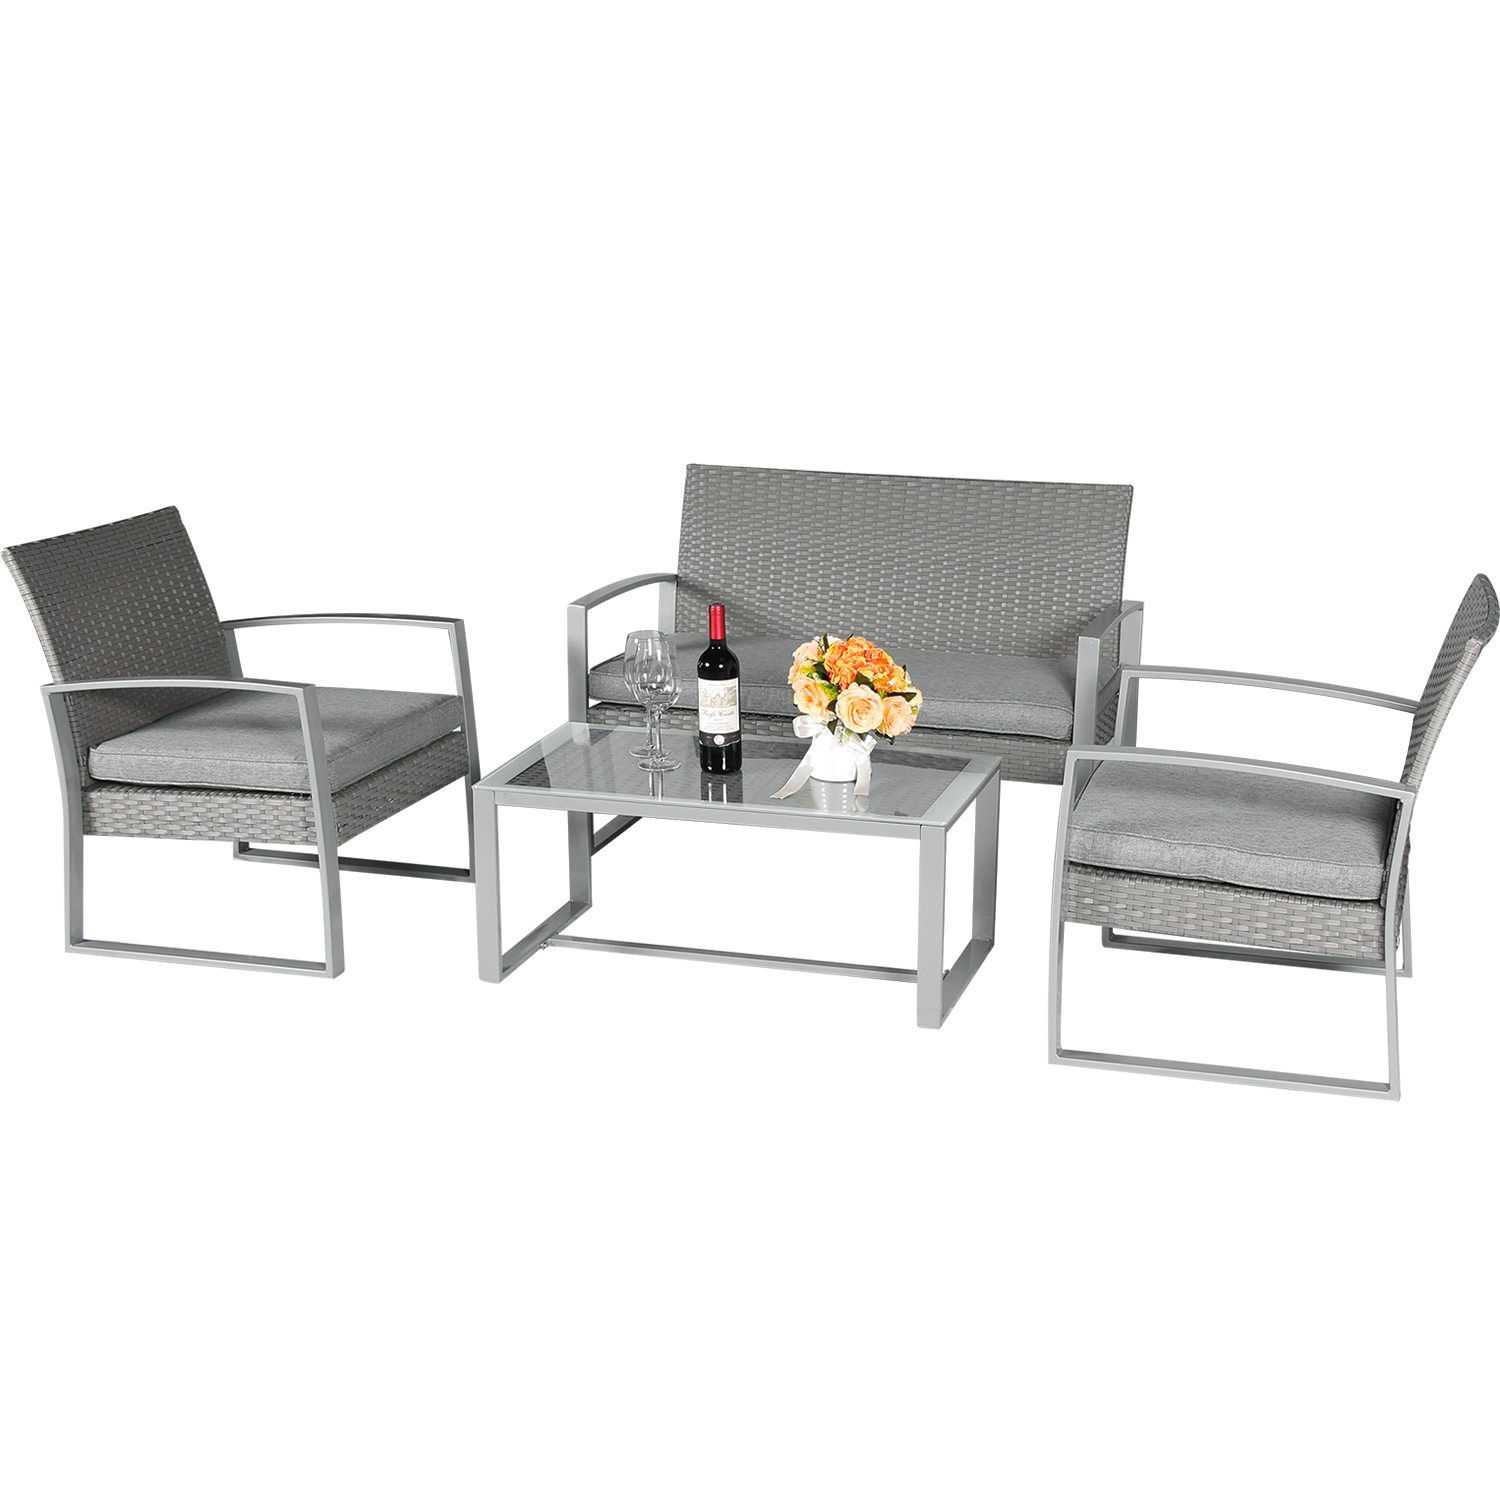 4 PC Rattan Furniture Set Conversation Sectional Wicker Lawn Deck Cushioned Seat